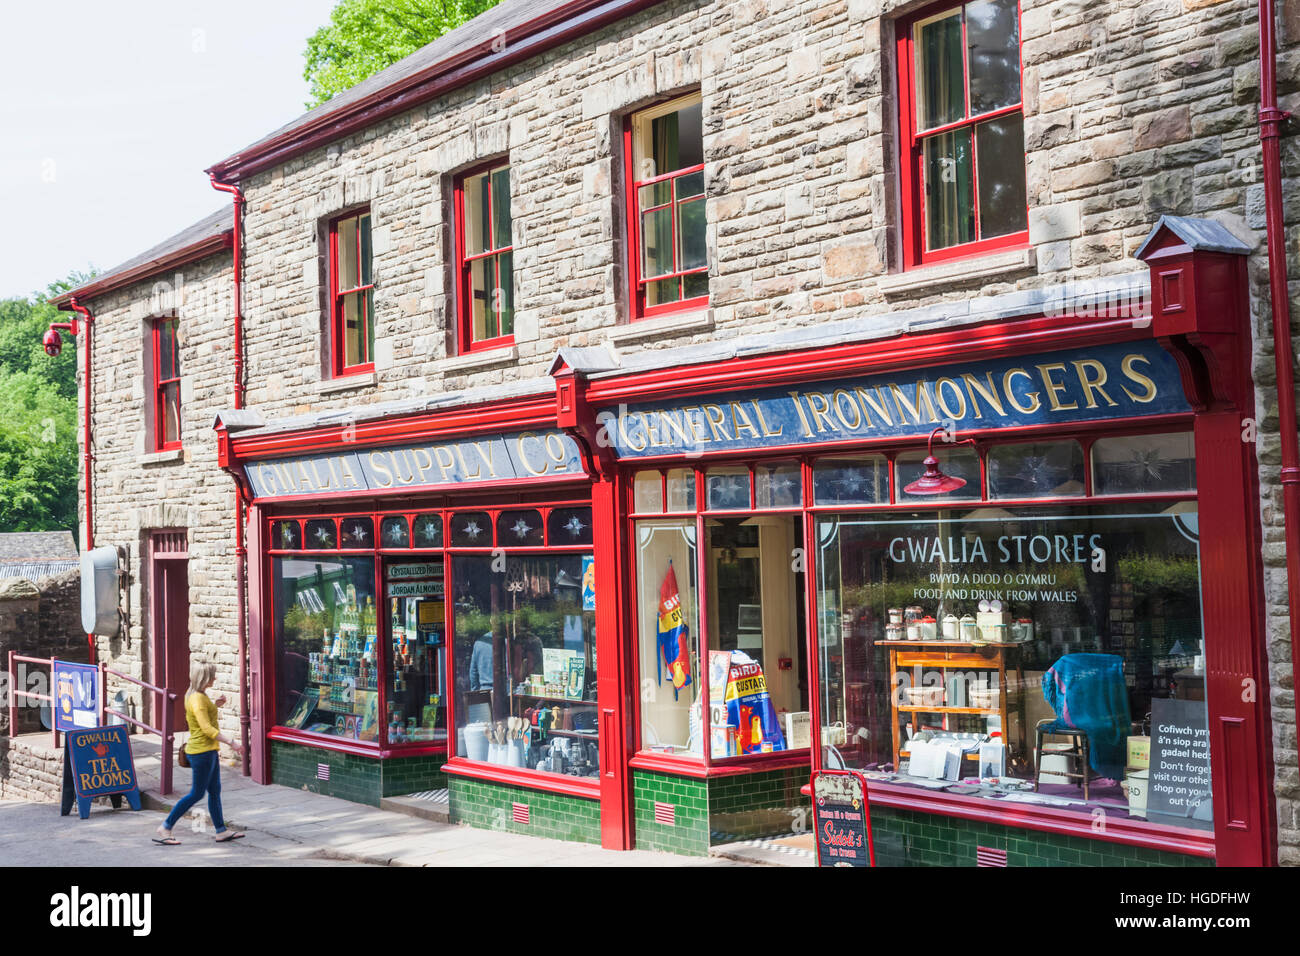 Wales, Cardiff, St Fagan's, Museum of Welsh Life, Gwalia Supply Store - Stock Image